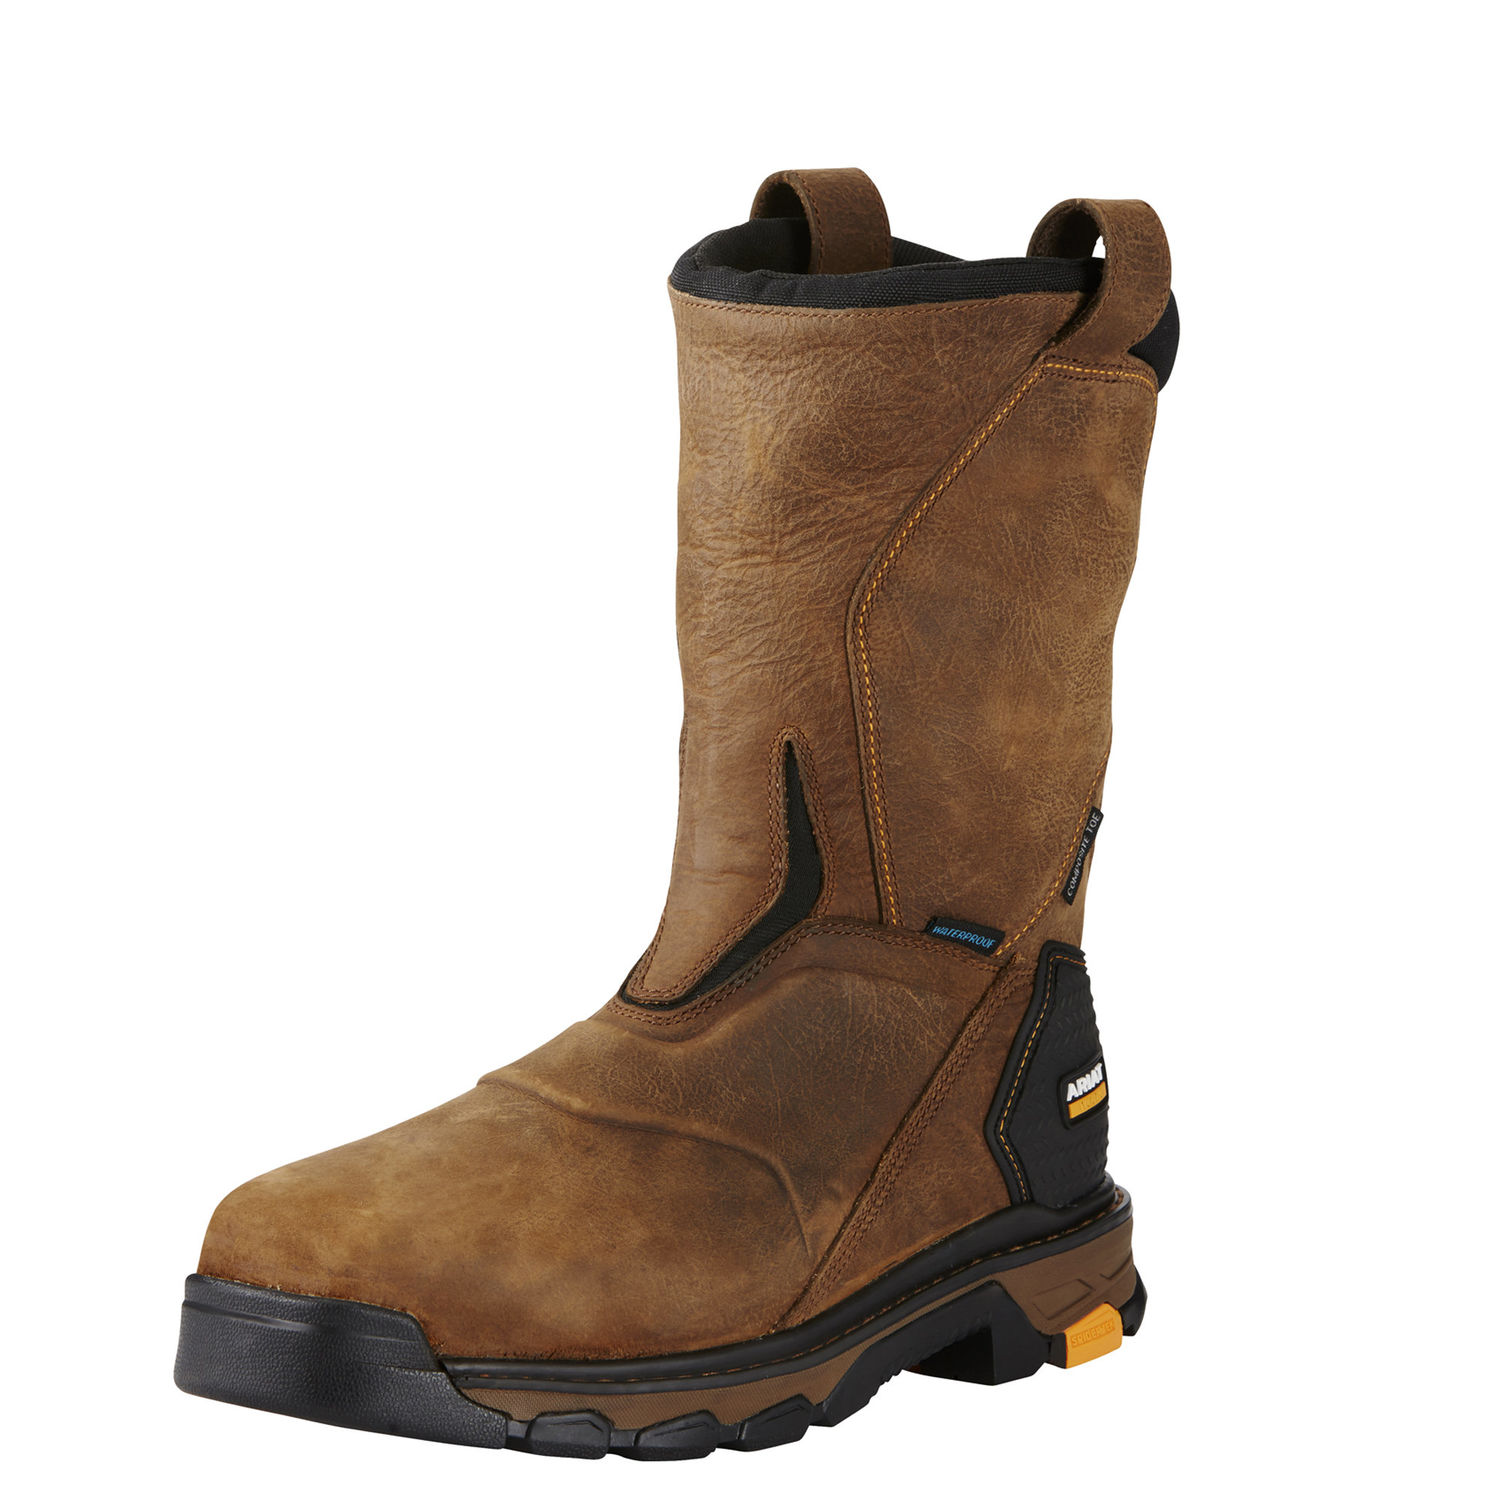 Intrepid Waterproof Composite Toe Work Boot-Ariat